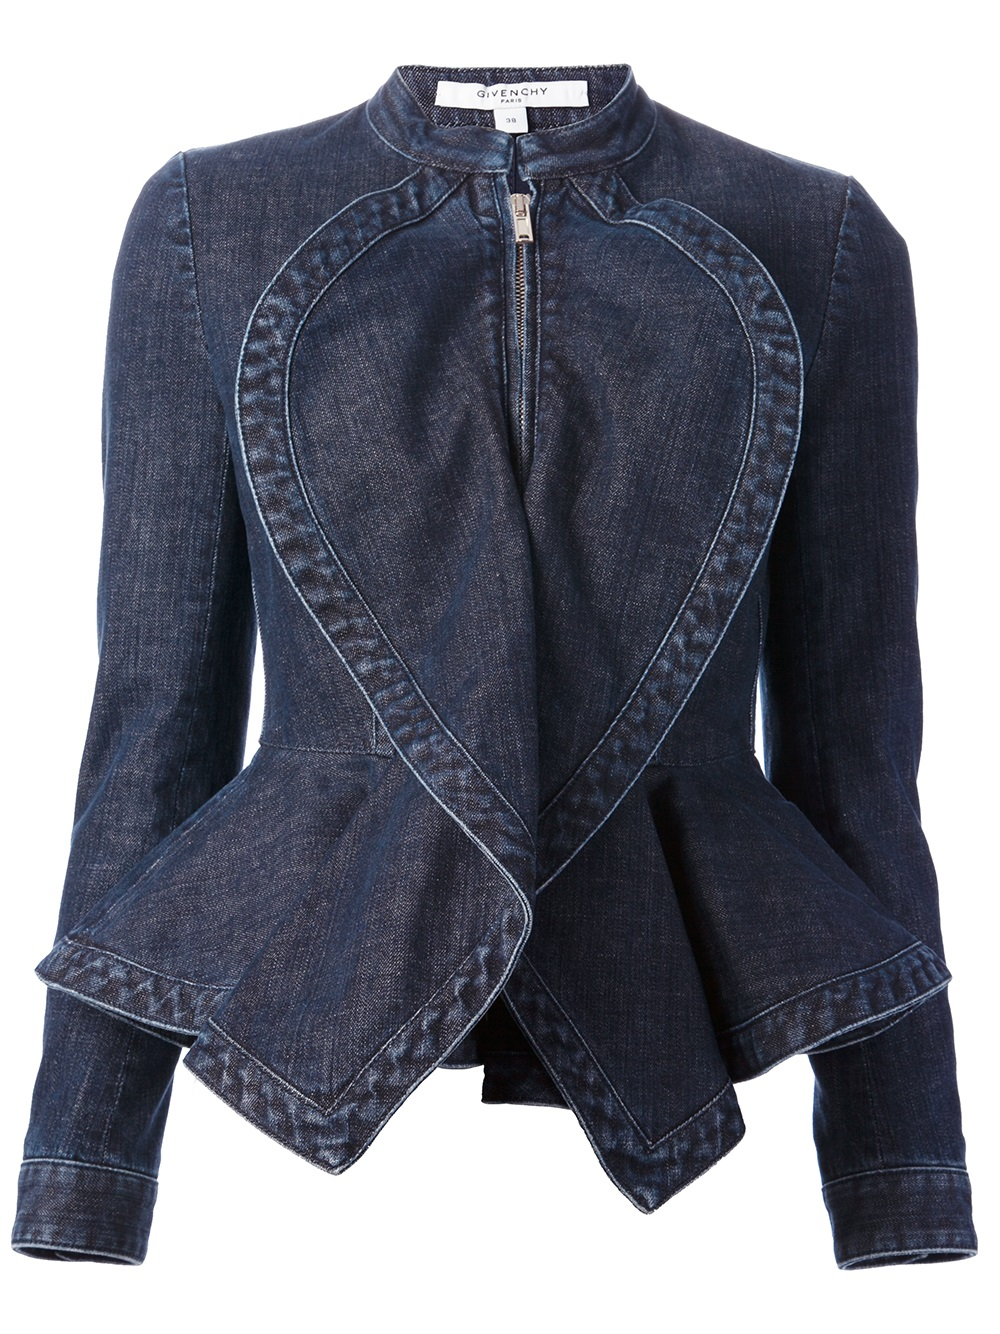 Special Buy. See more special offers. Customer Rating. 4 Stars & Up. 3 Stars & Up. 2 Stars & Up. Denim Jackets Outerwear. Showing 48 of results that match your query. Search Product Result. Cover Girl Jeans Denim Jacket for Women Distressed Long Sleeve Size Small Denim Blue. Product Image. Price $